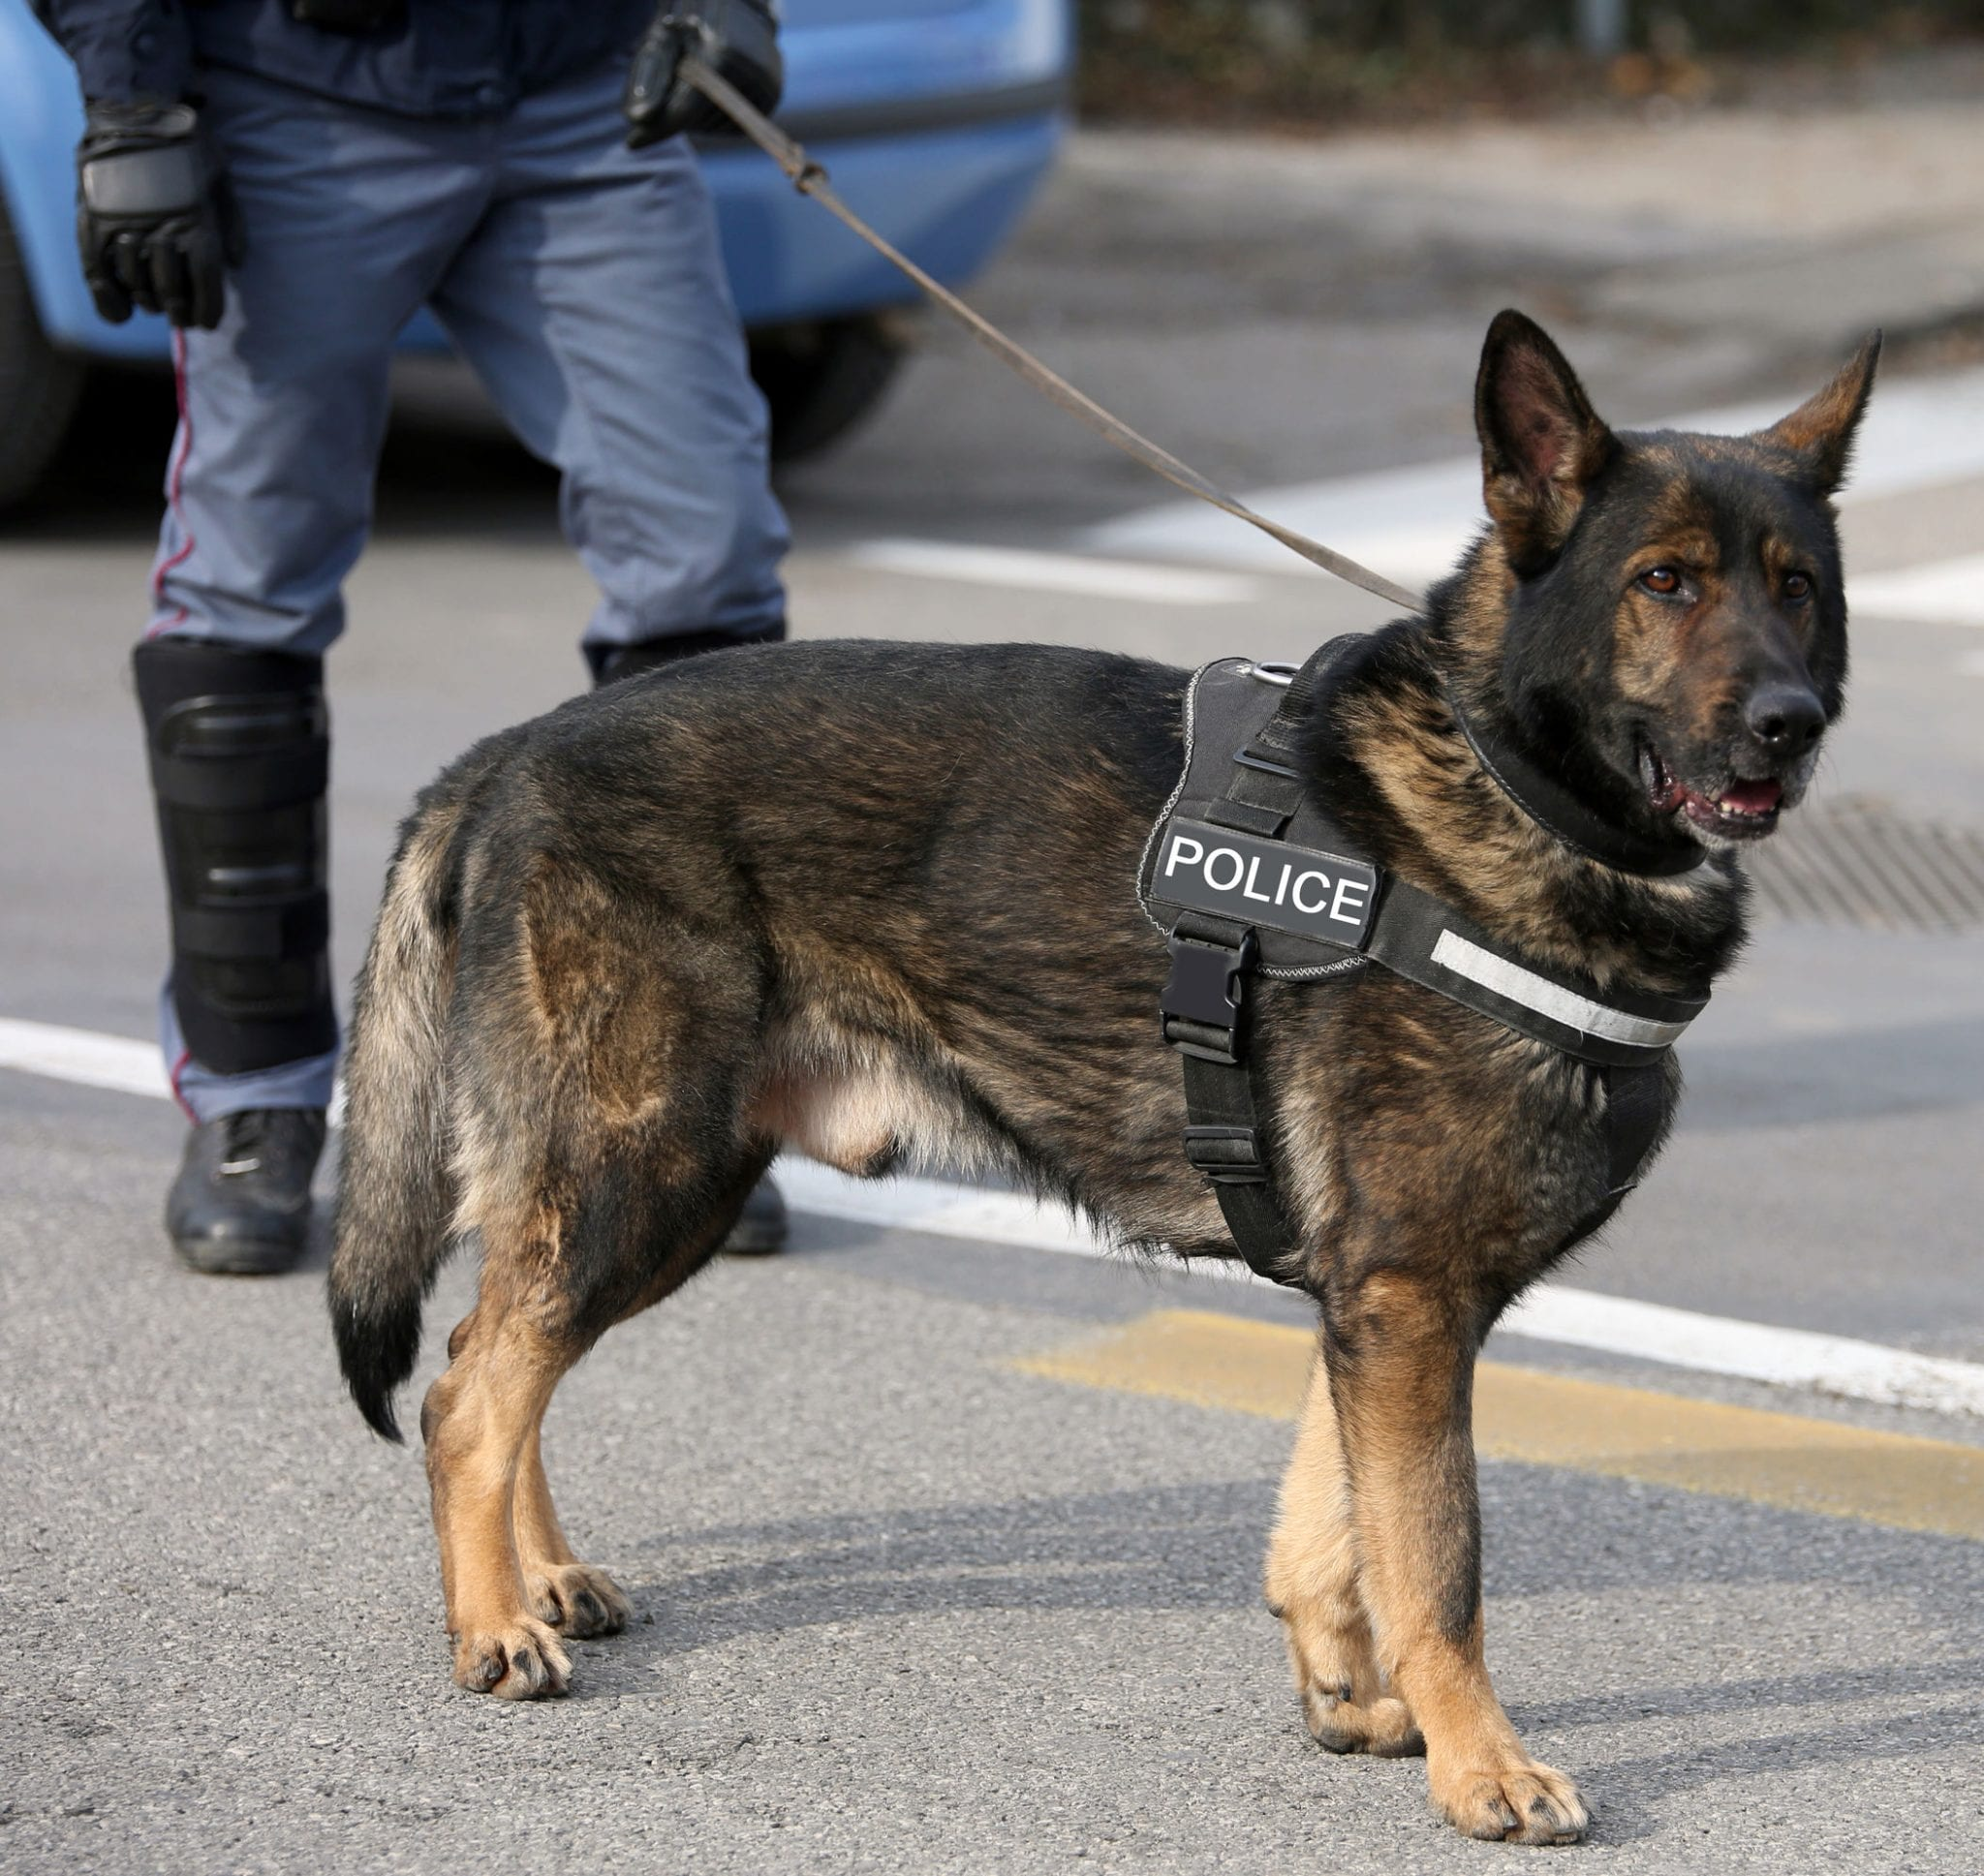 Busted for Drug Trafficking by a Texas Police Dog? Your Rights